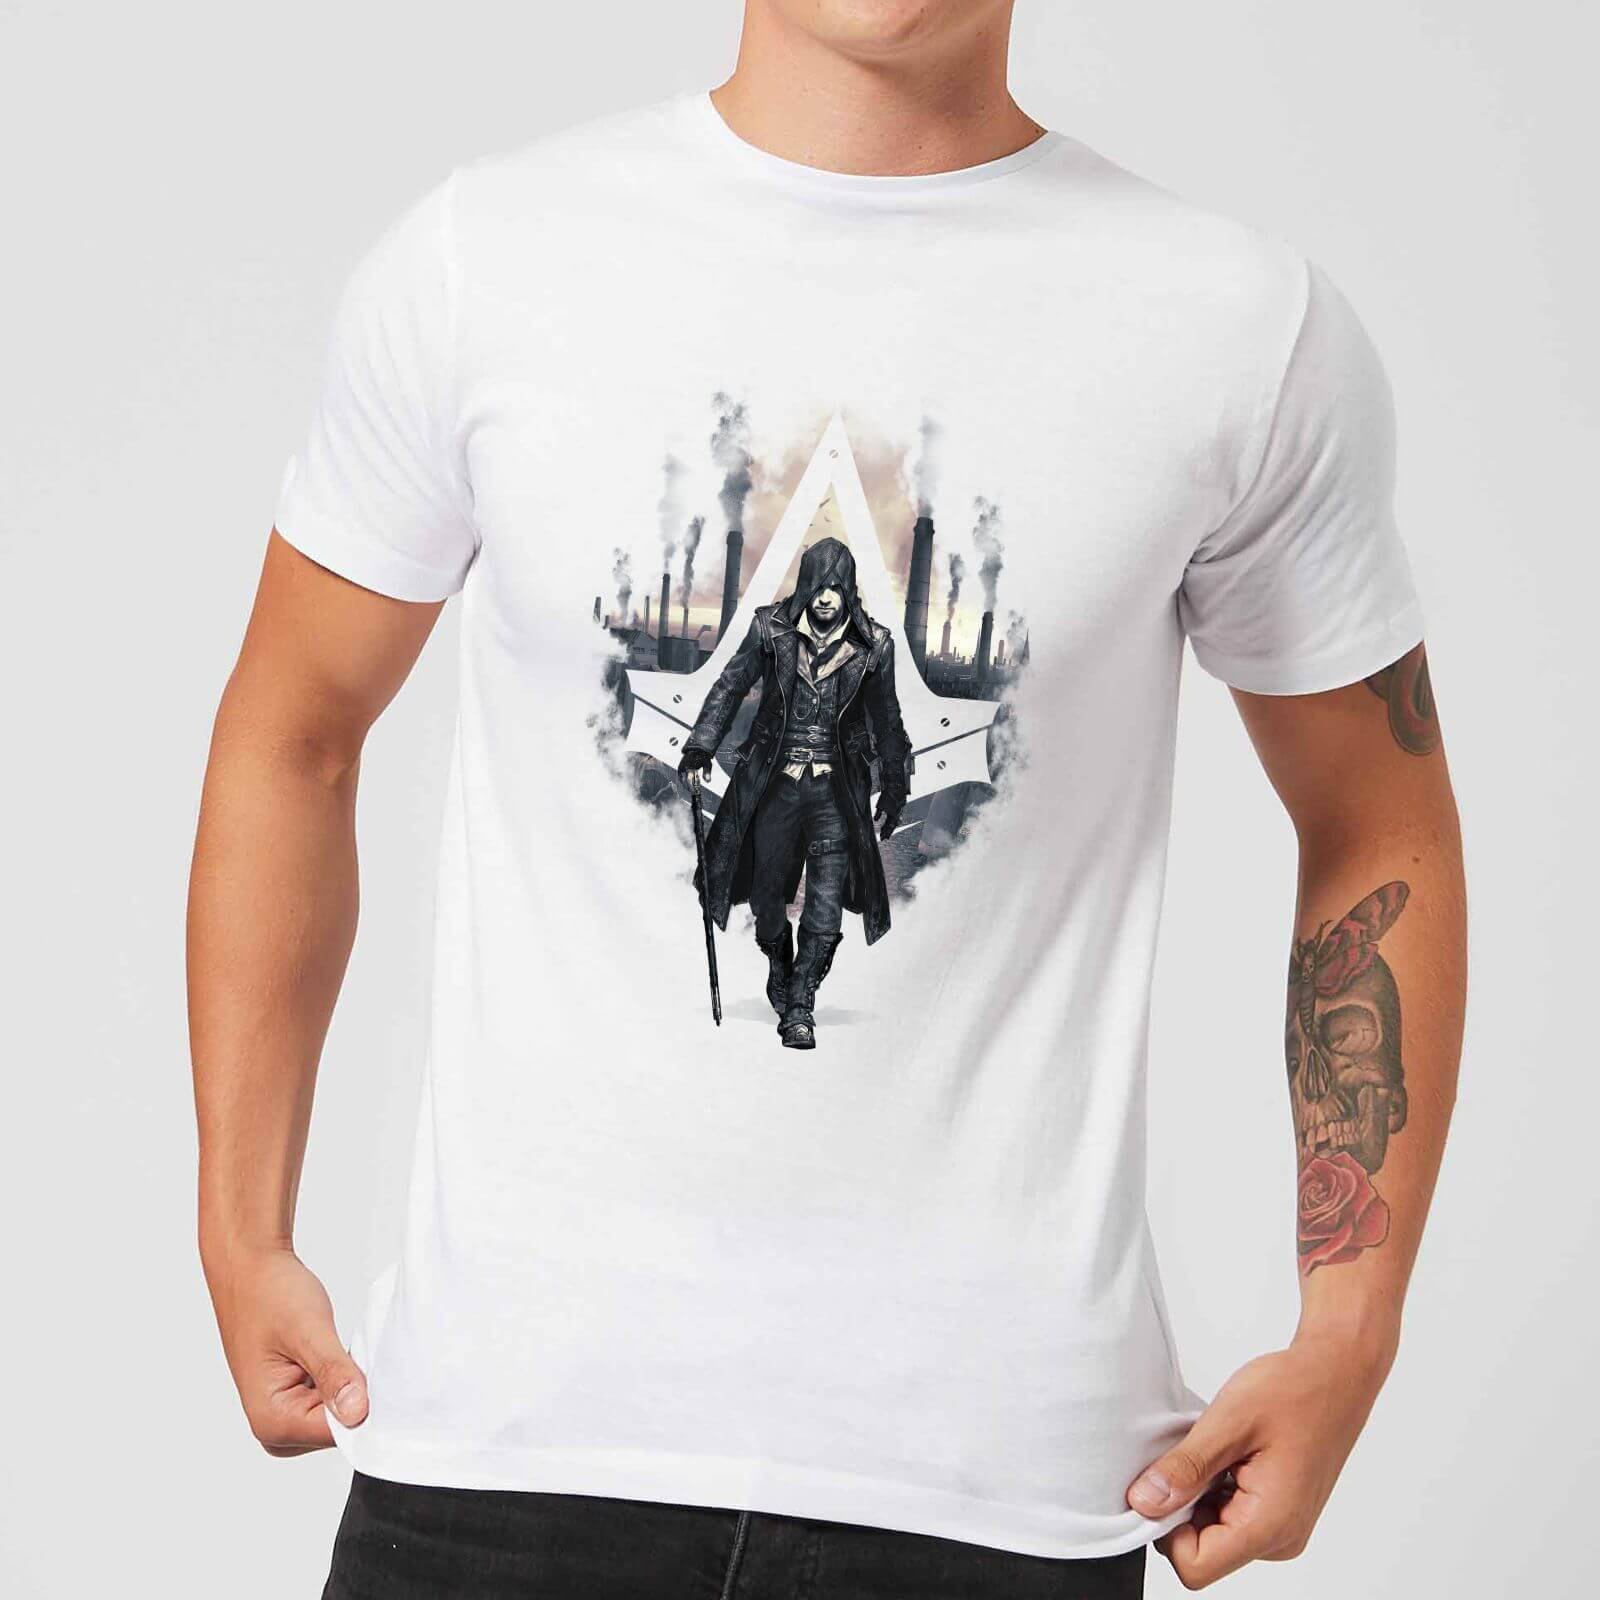 Assassin's Creed T-Shirt Homme London Skyline Assassin's Creed Syndicate - Blanc - XL